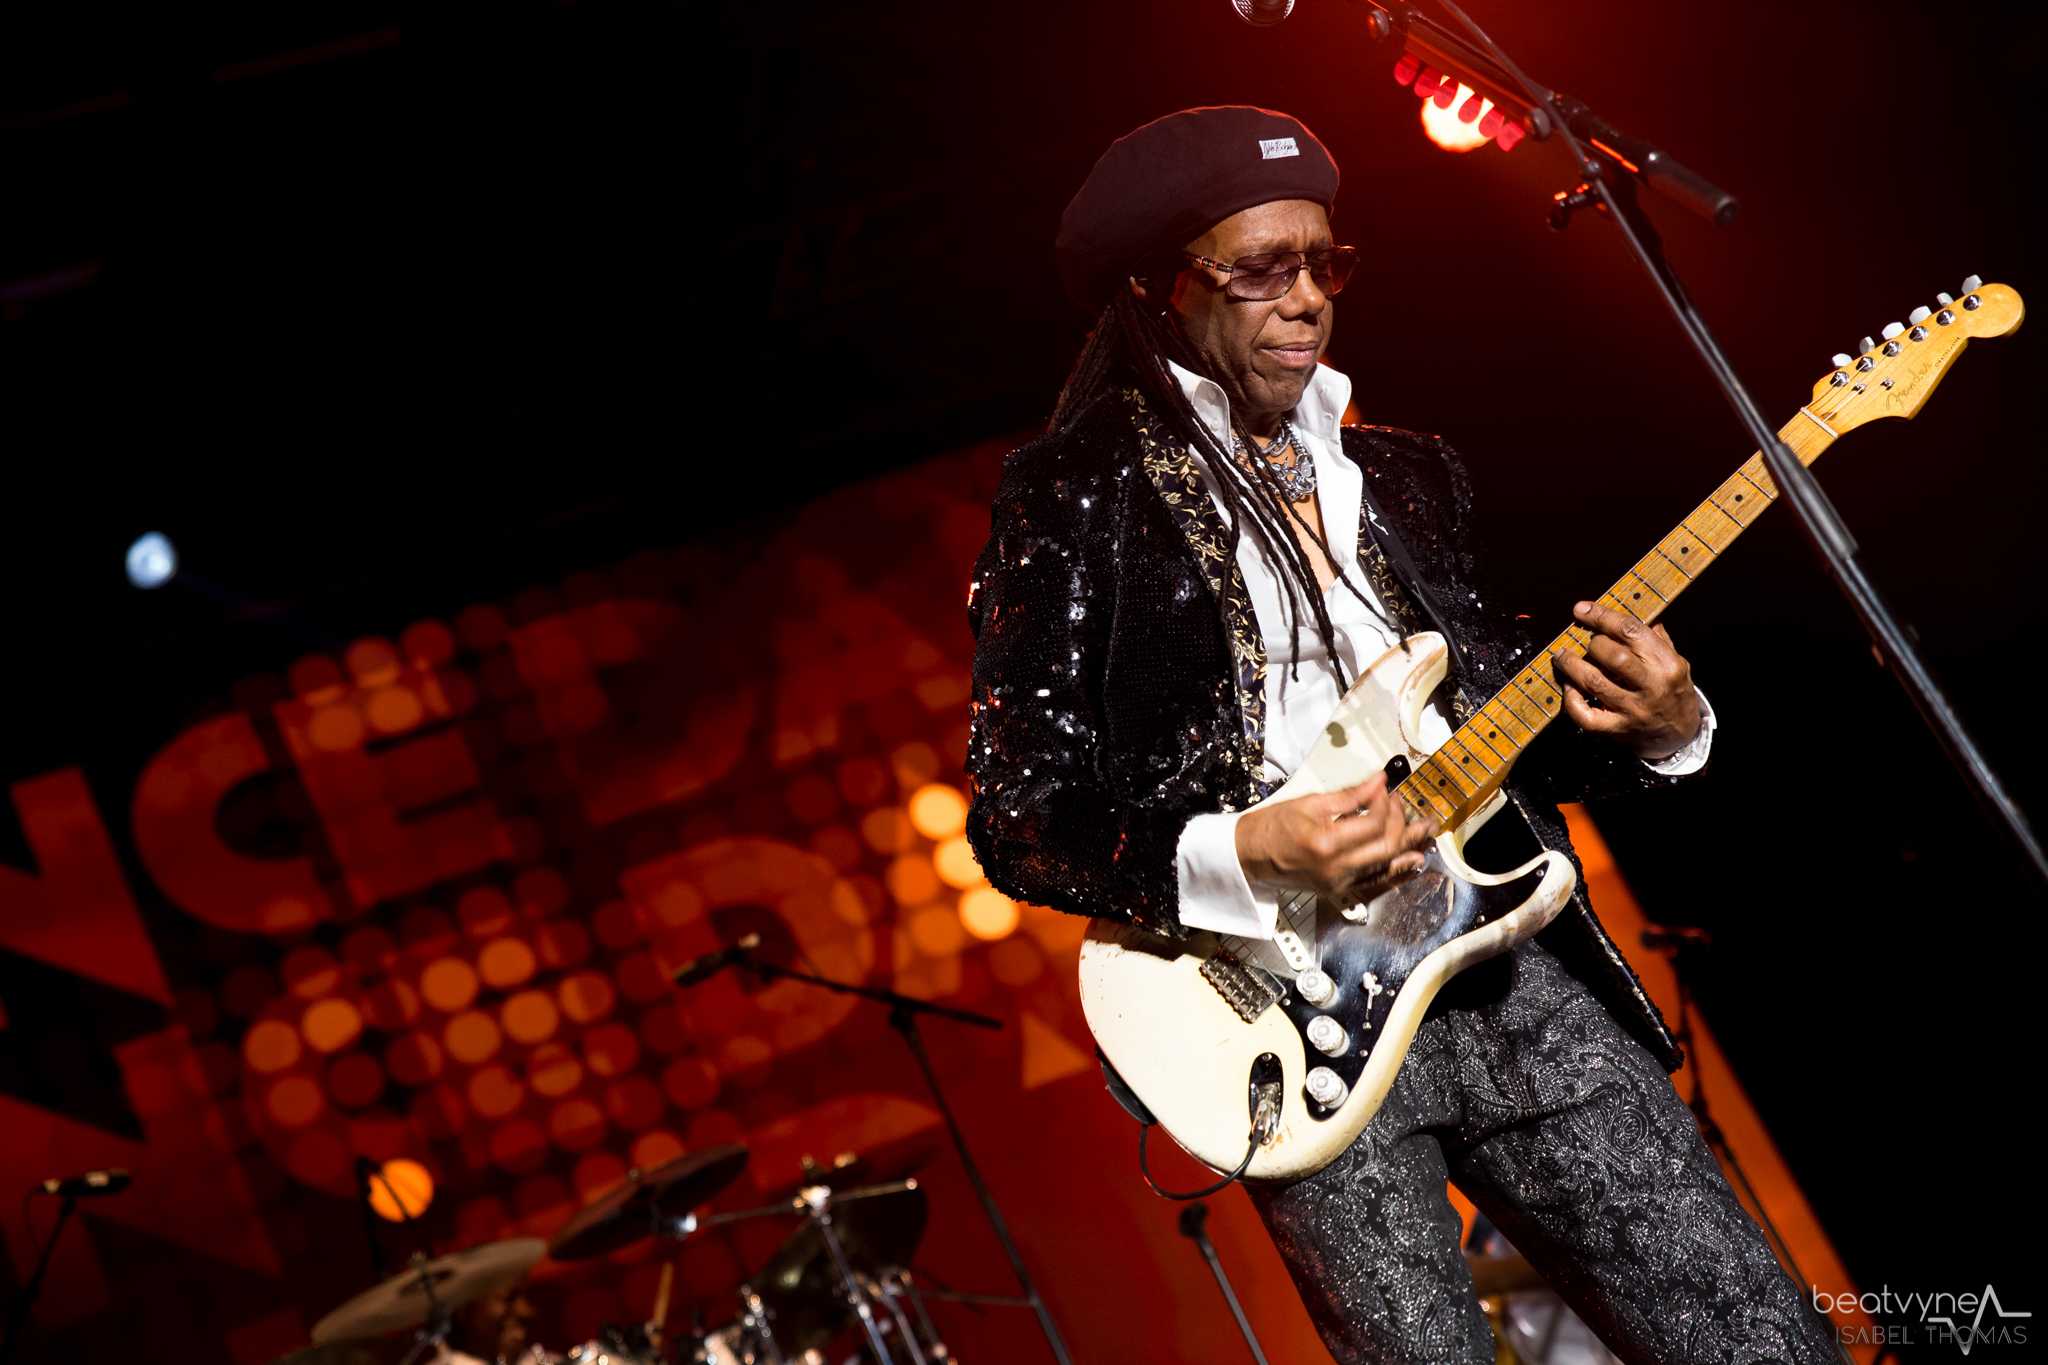 Nile Rodgers & Chic Live at St. Anne's Park Dublin: Sunday 2 June, 2019